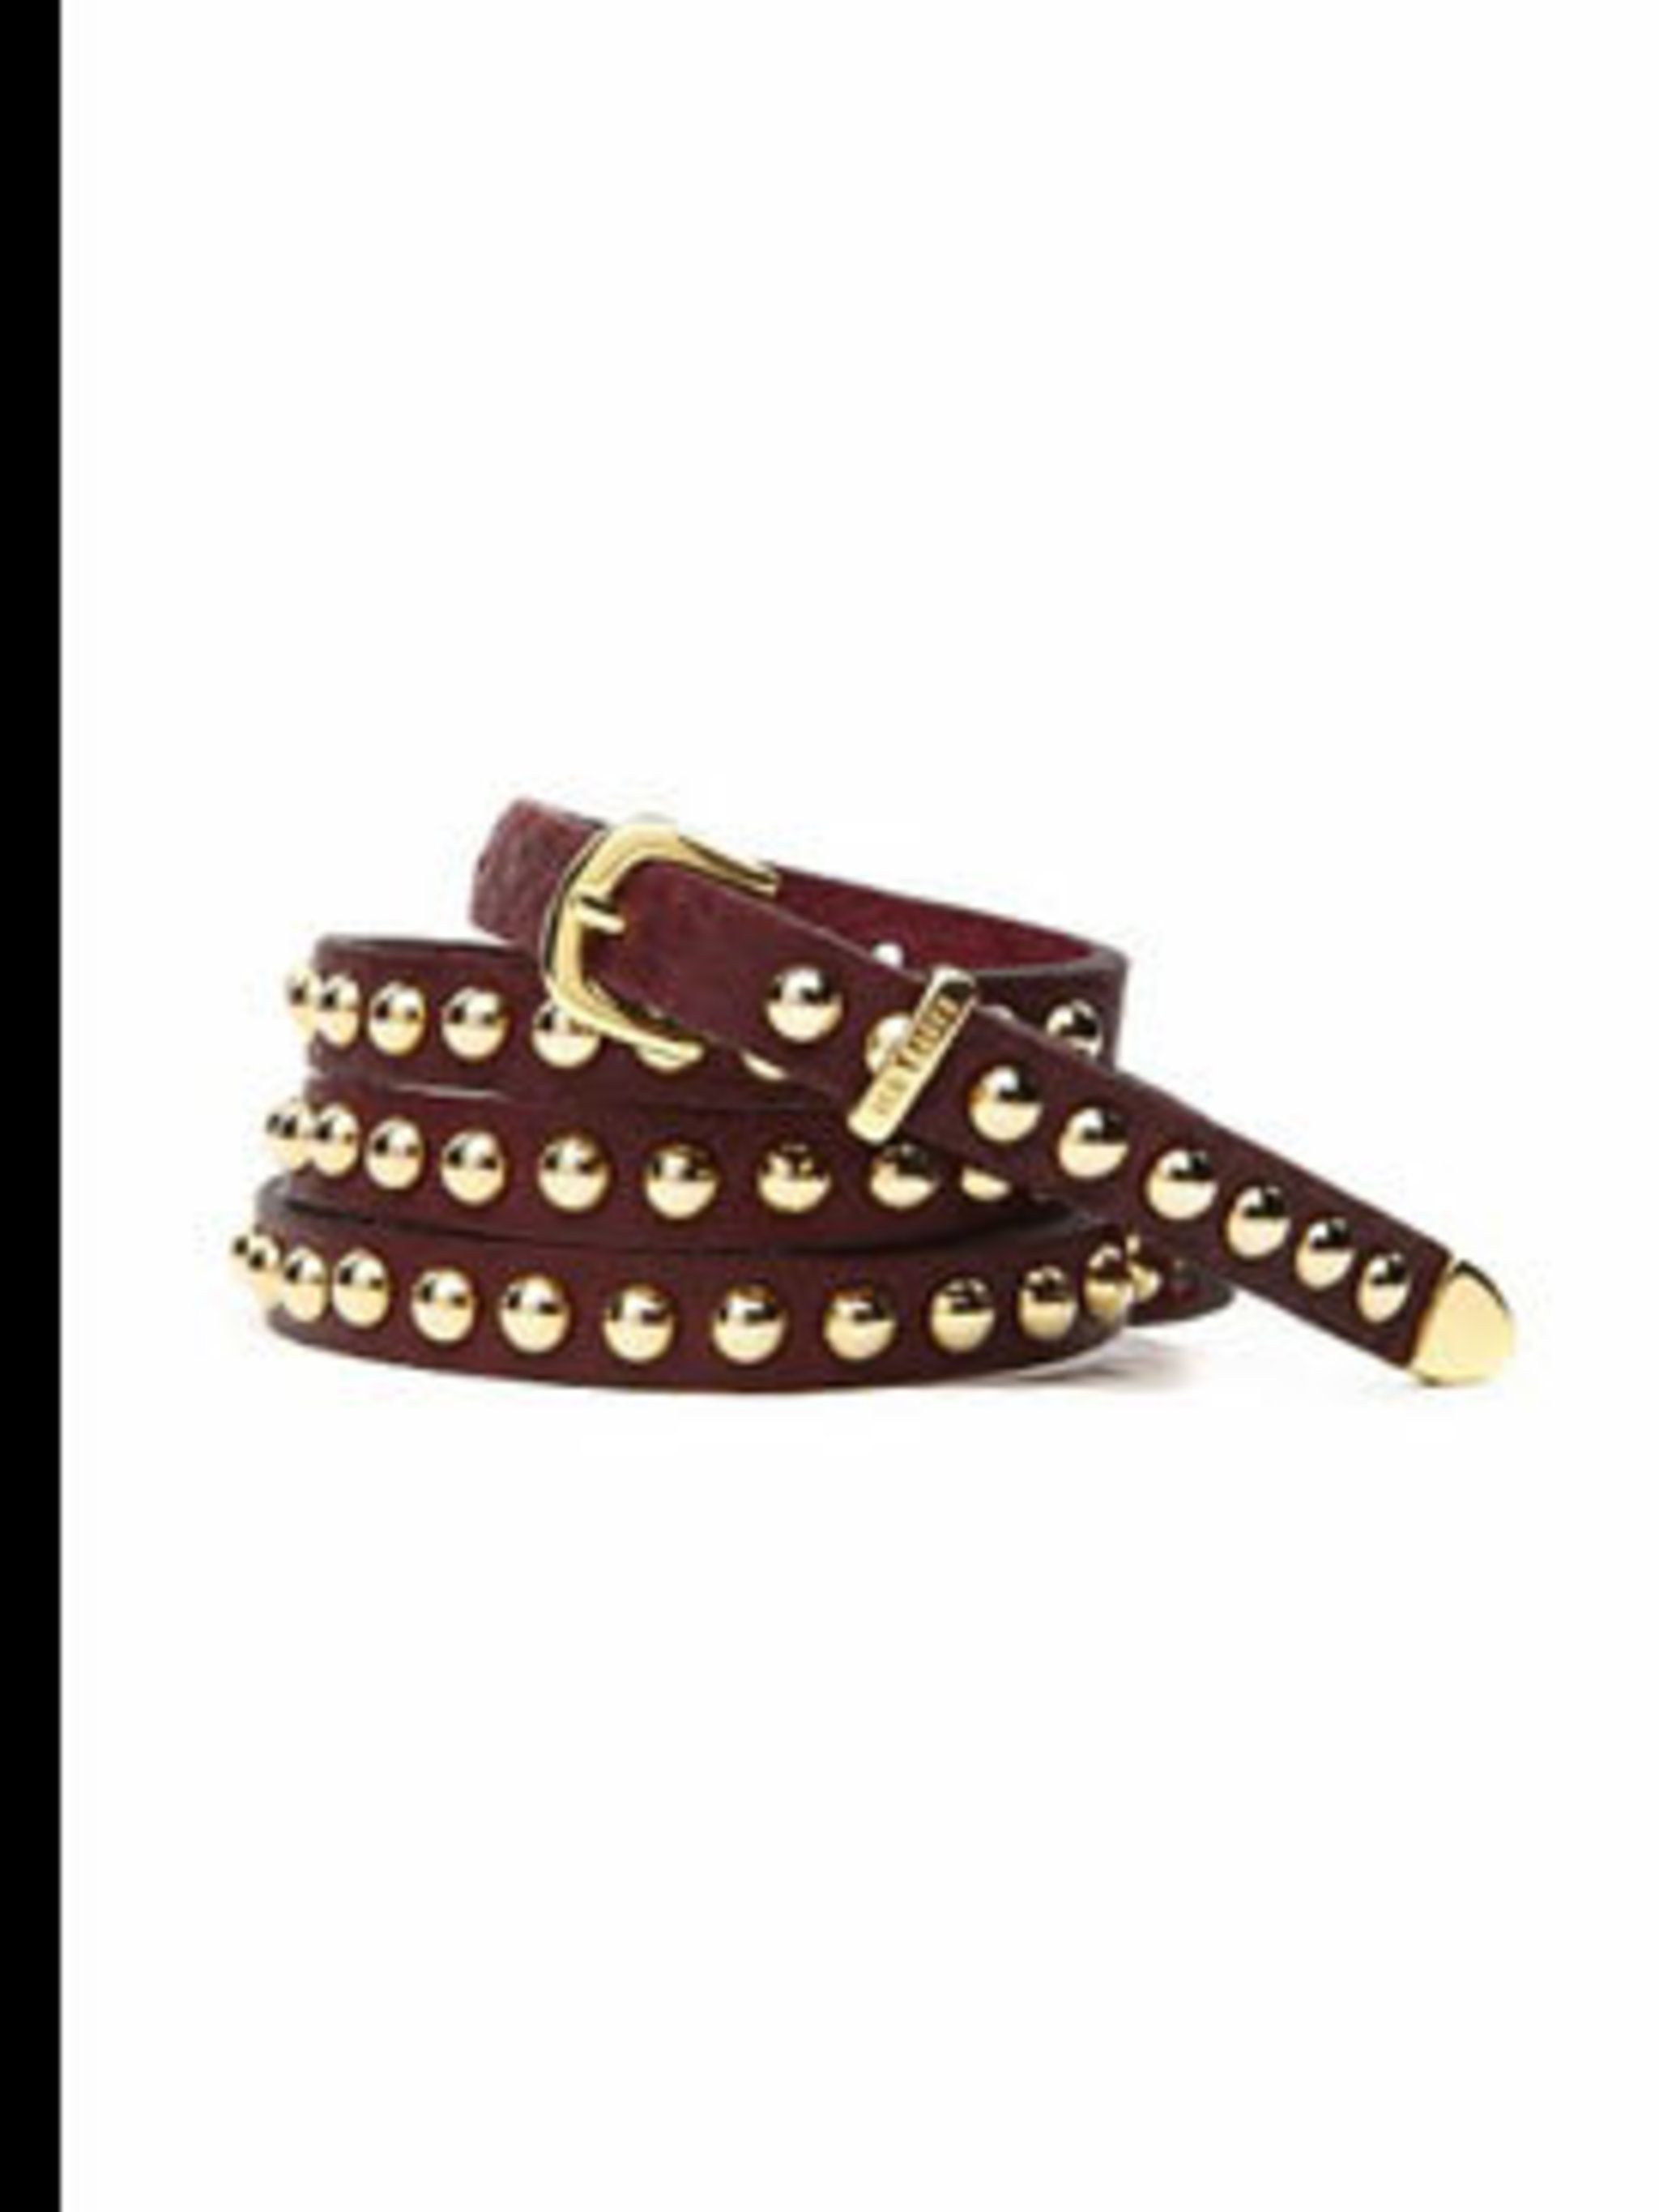 "<p>Studded leather belt, £39, by <a href=""www.tedbaker.com"">Ted Baker</a></p>"